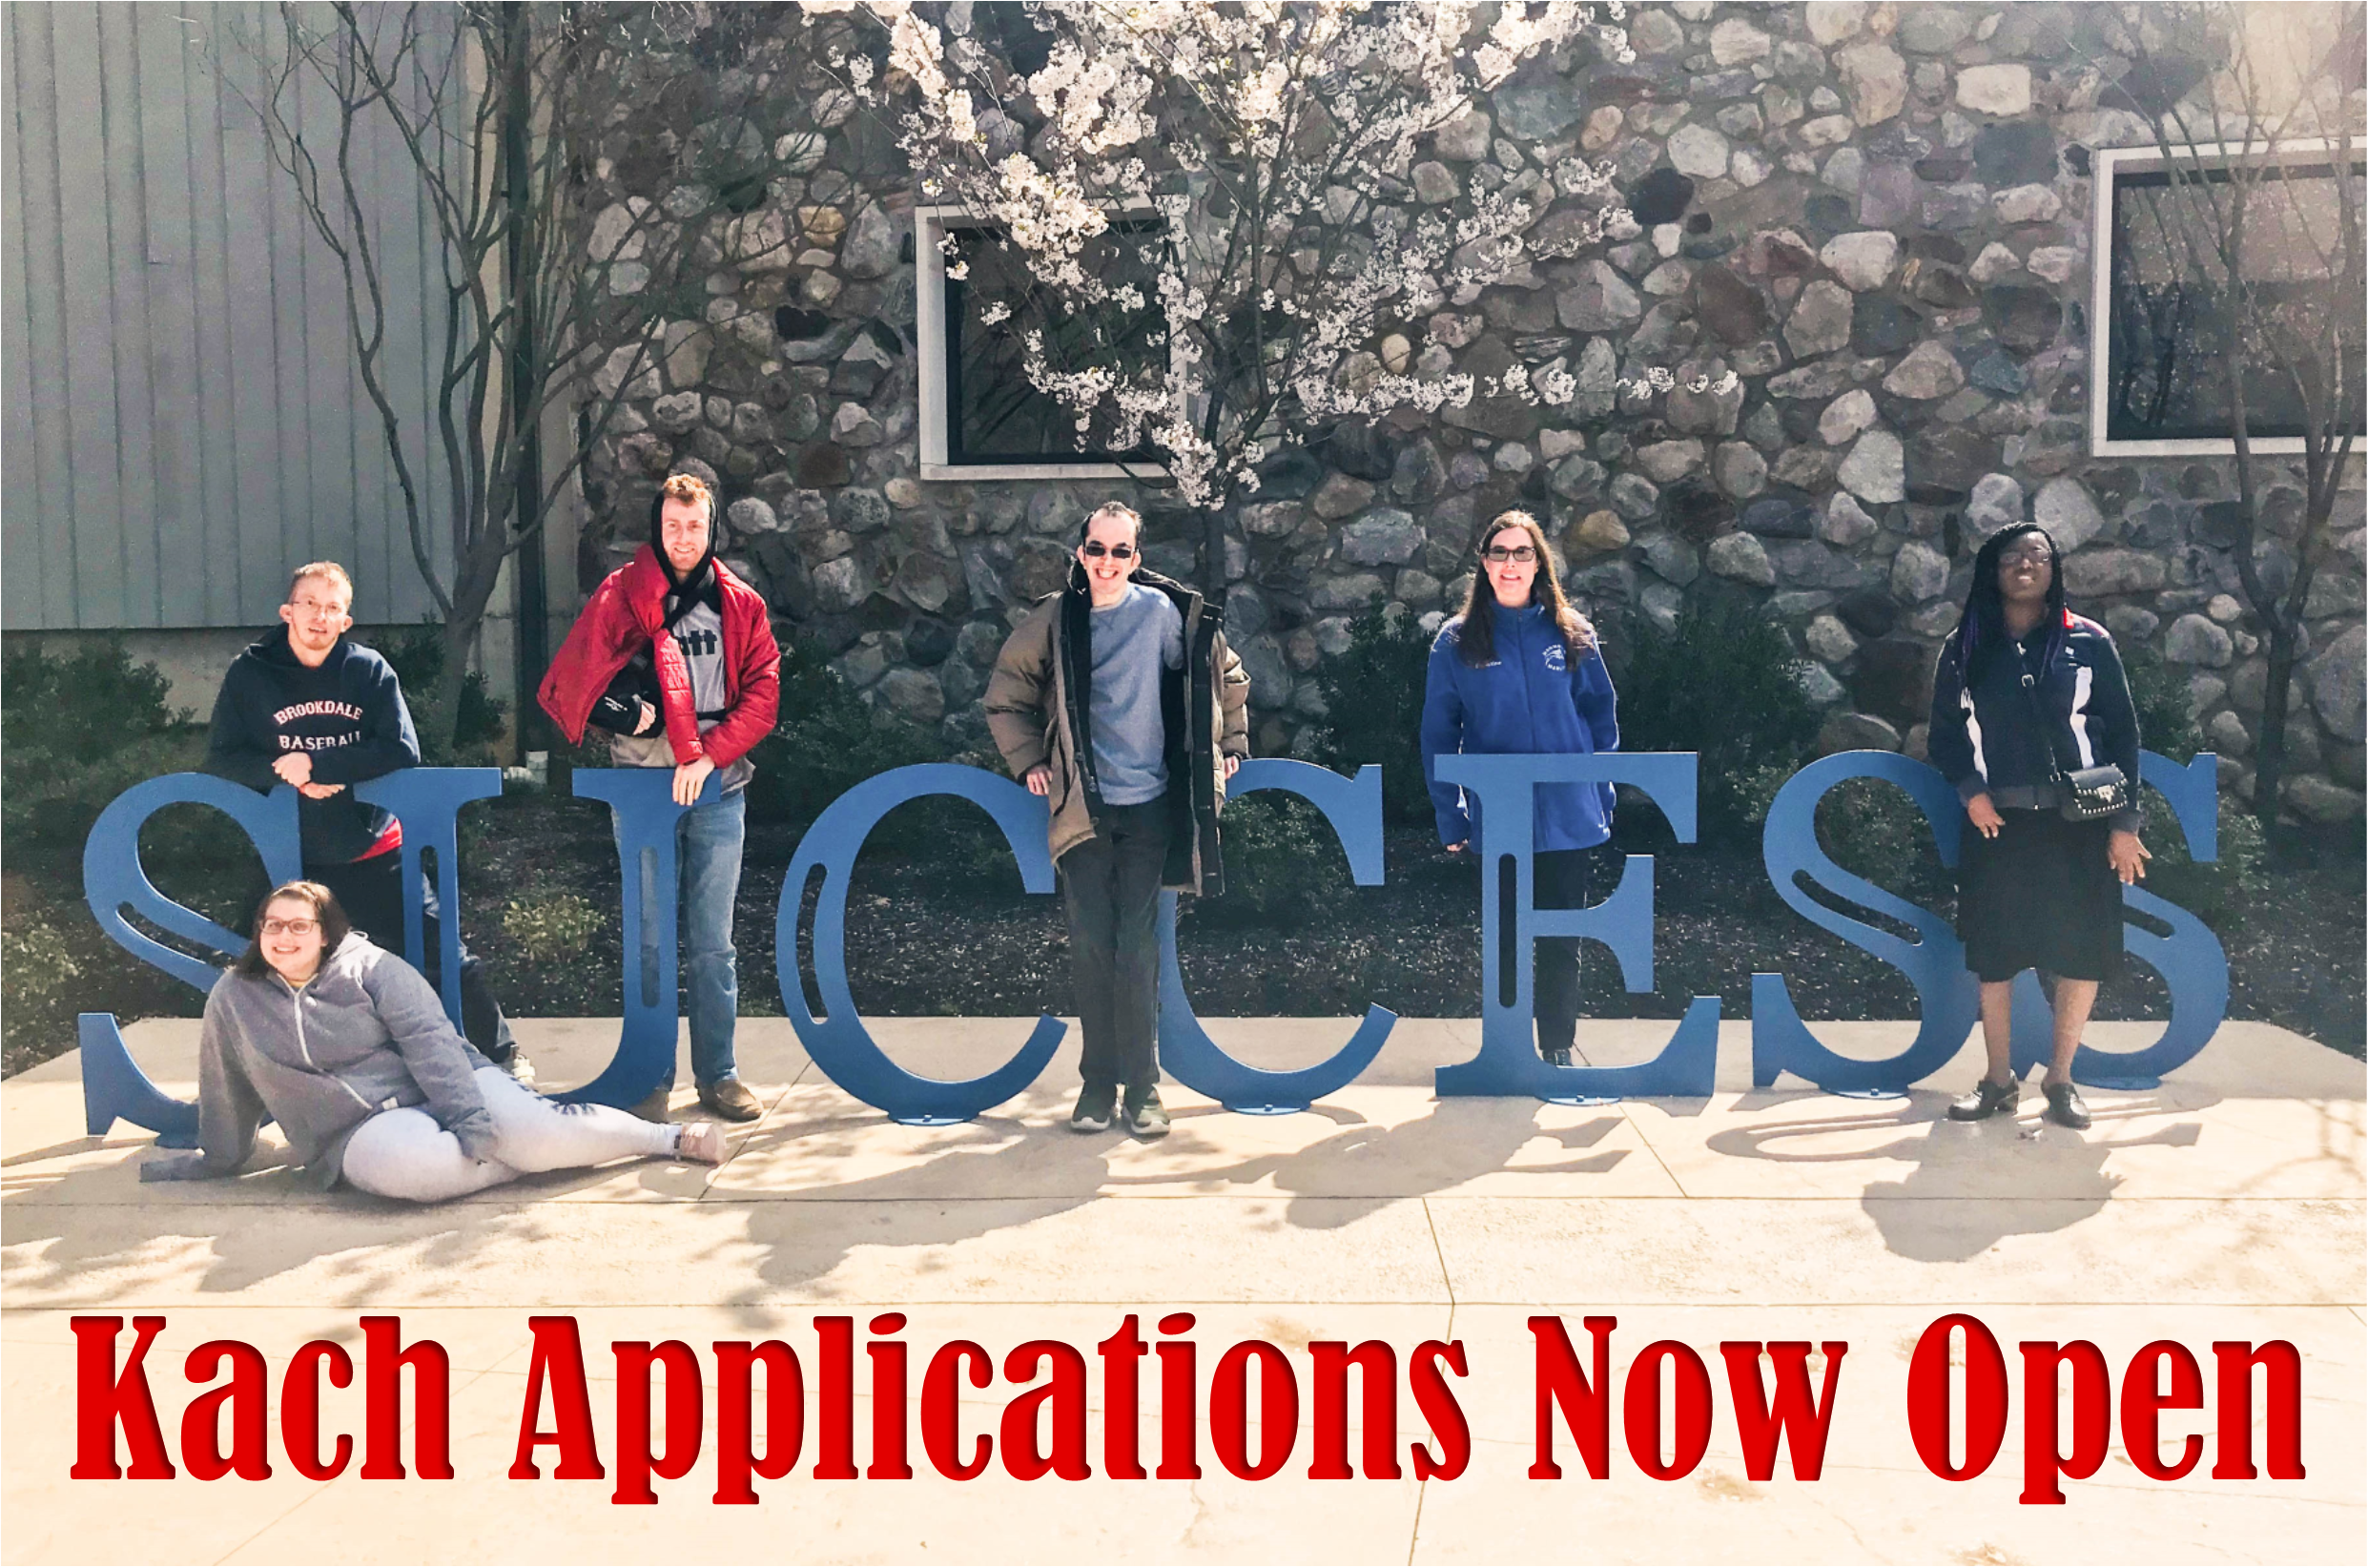 Kach Applications Now Open